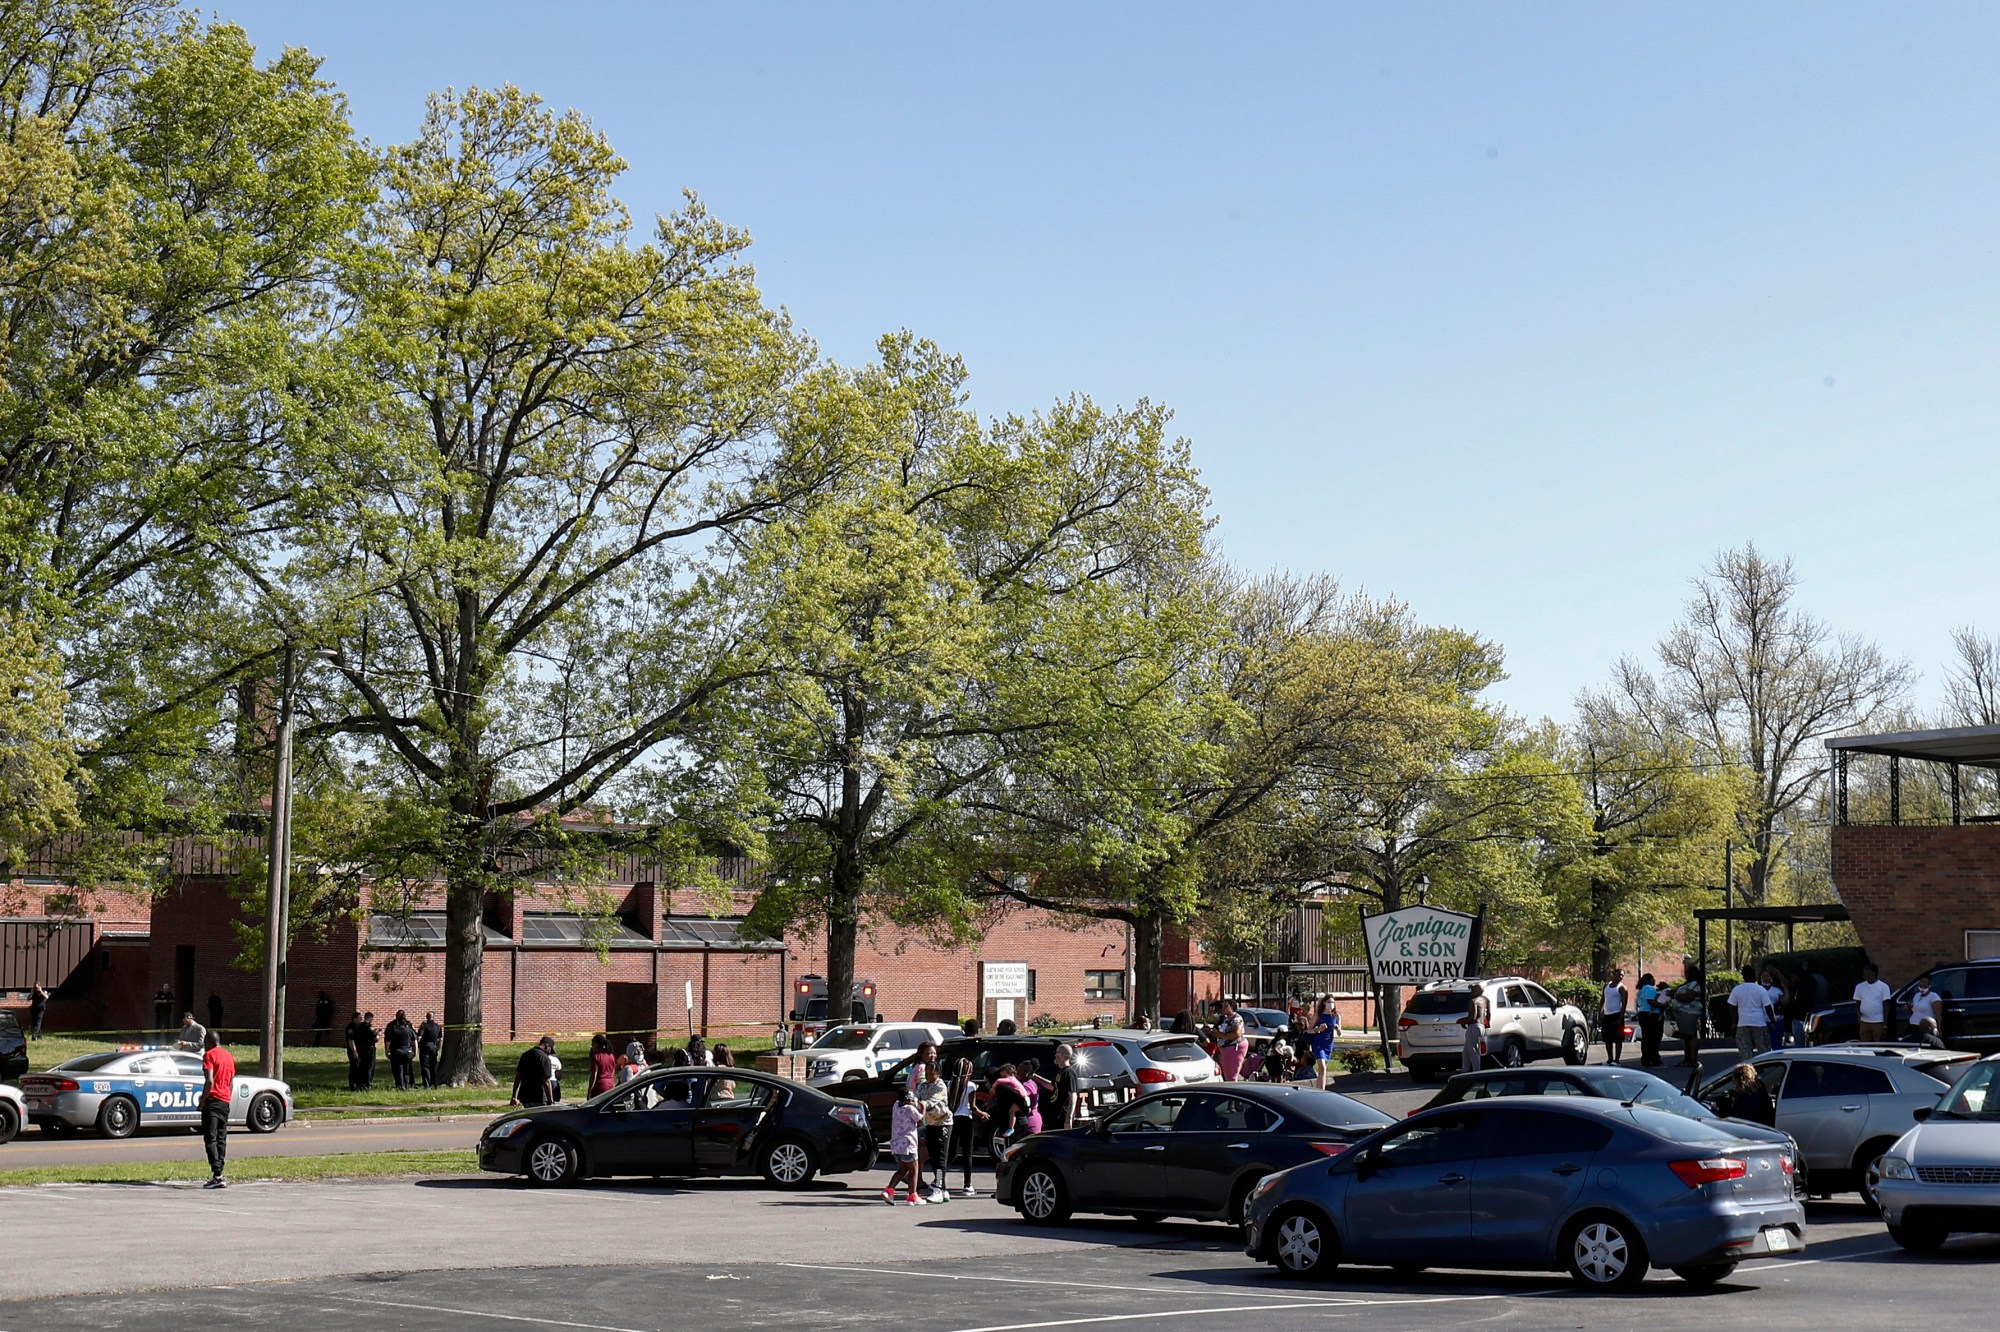 People gather outside Austin-East Magnet High School in Knoxville, Tenn., as Knoxville police work the scene following a shooting at the school Monday, April 12, 2021. (AP Photo/Wade Payne)